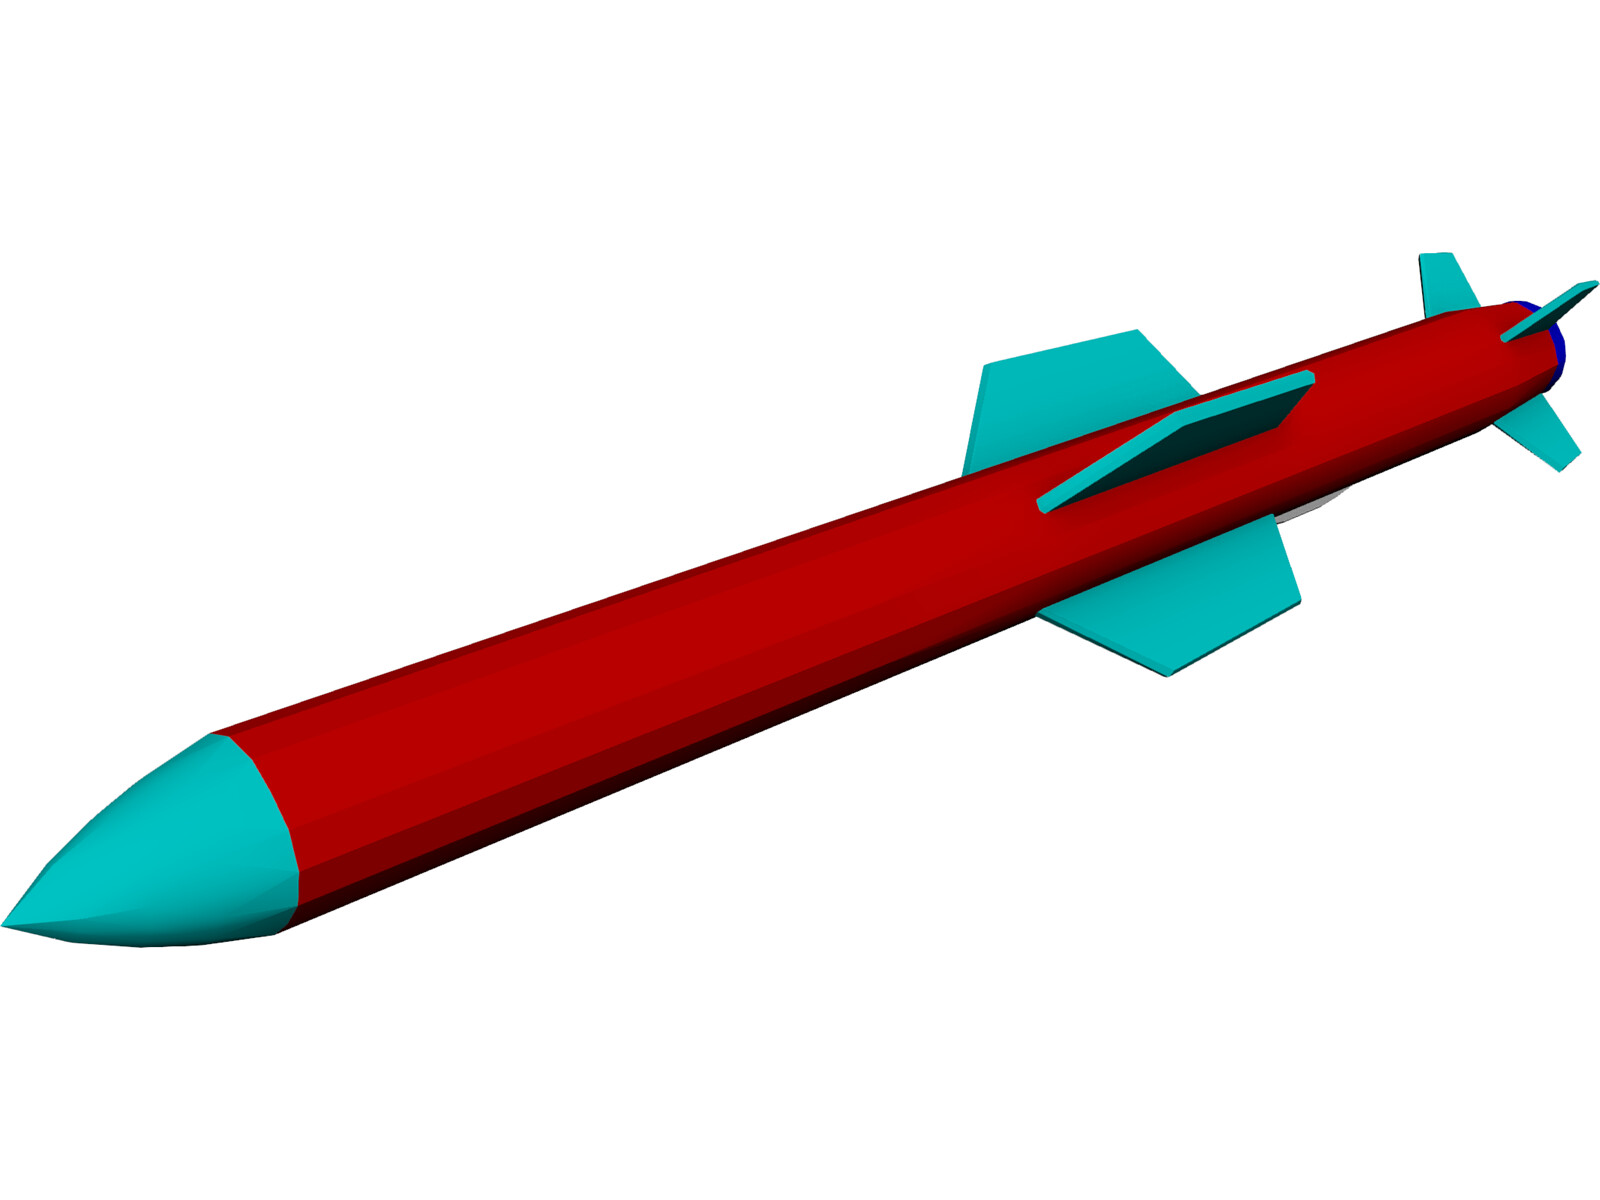 Harpoon Missile 3D Model